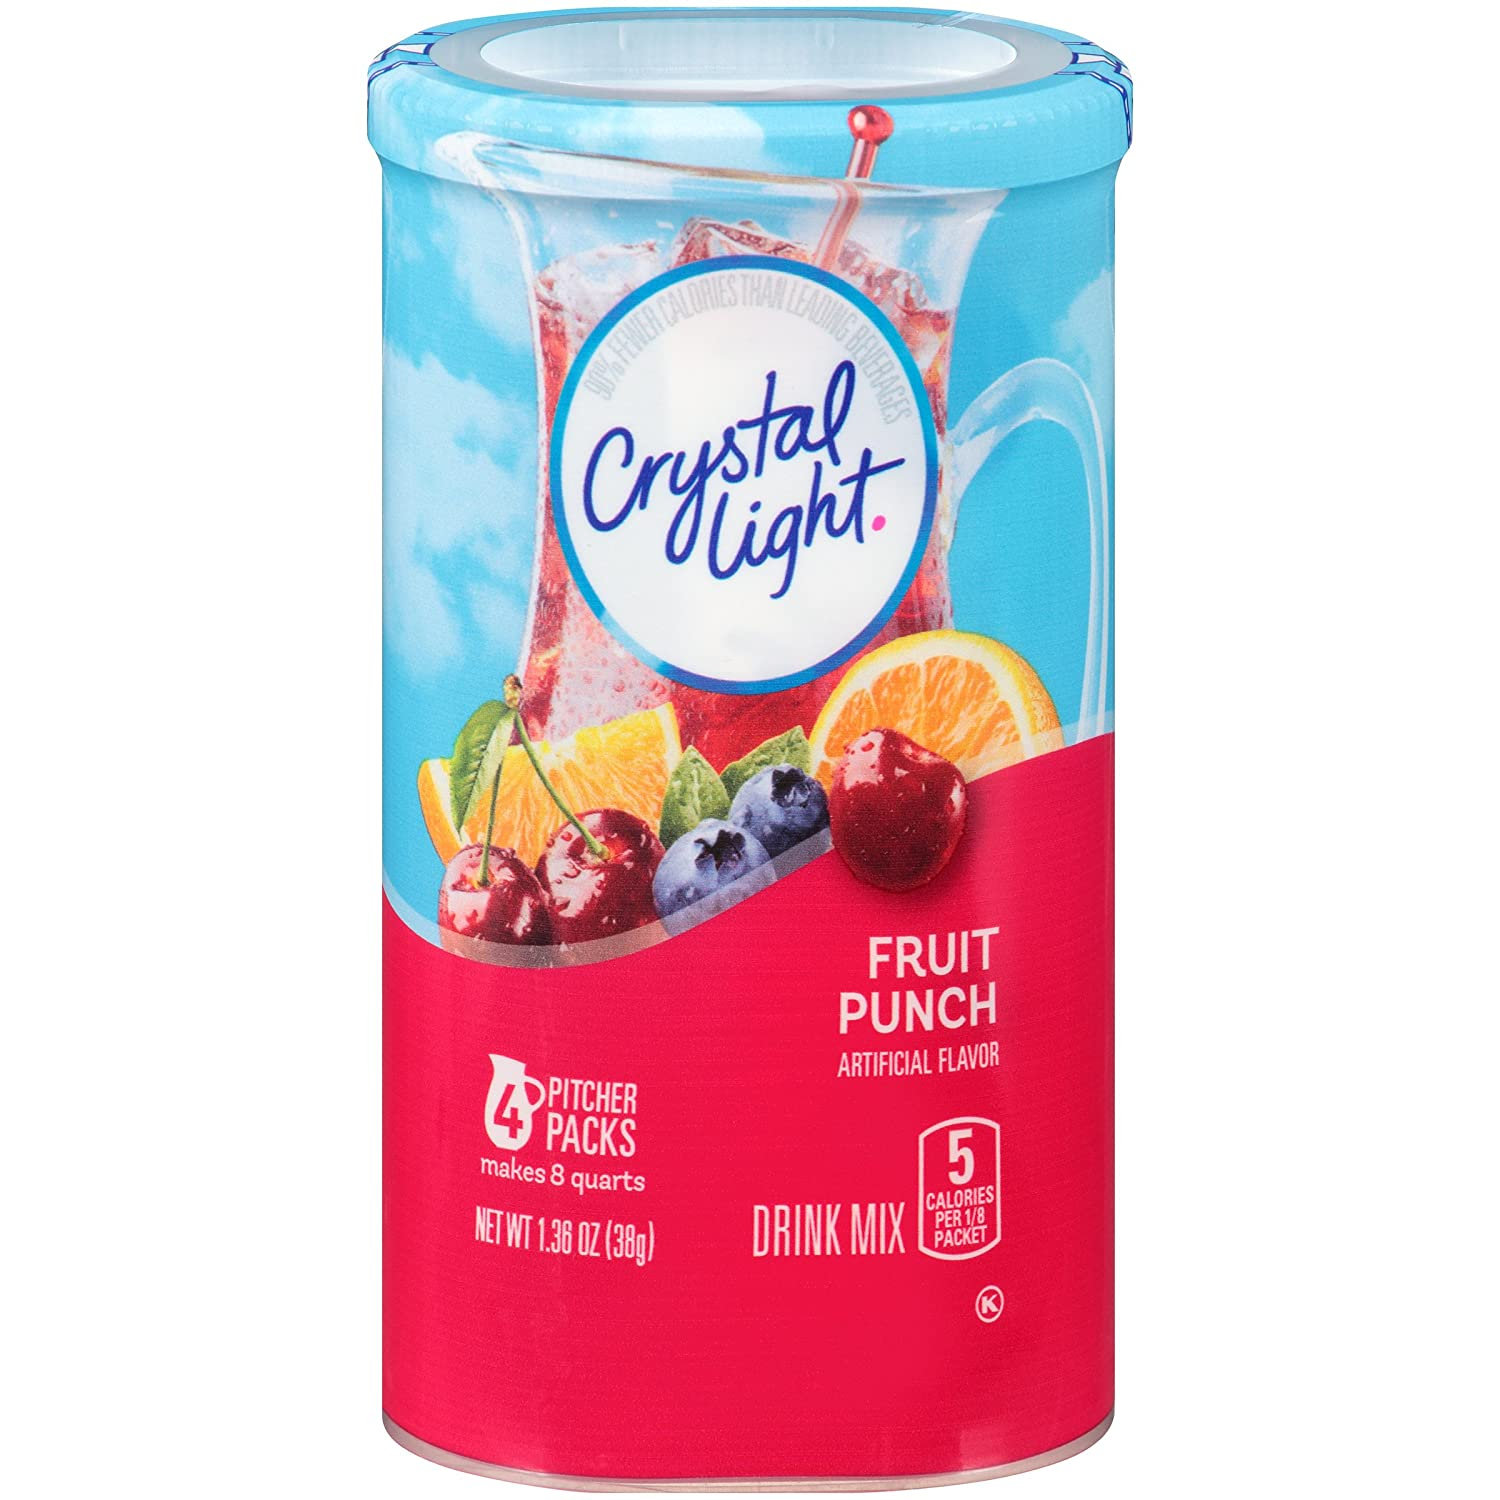 Crystal Light Drink Mix, Fruit Punch, Pitcher Packets, 4 Count, 1.36 oz (Pack of 12 Canisters)